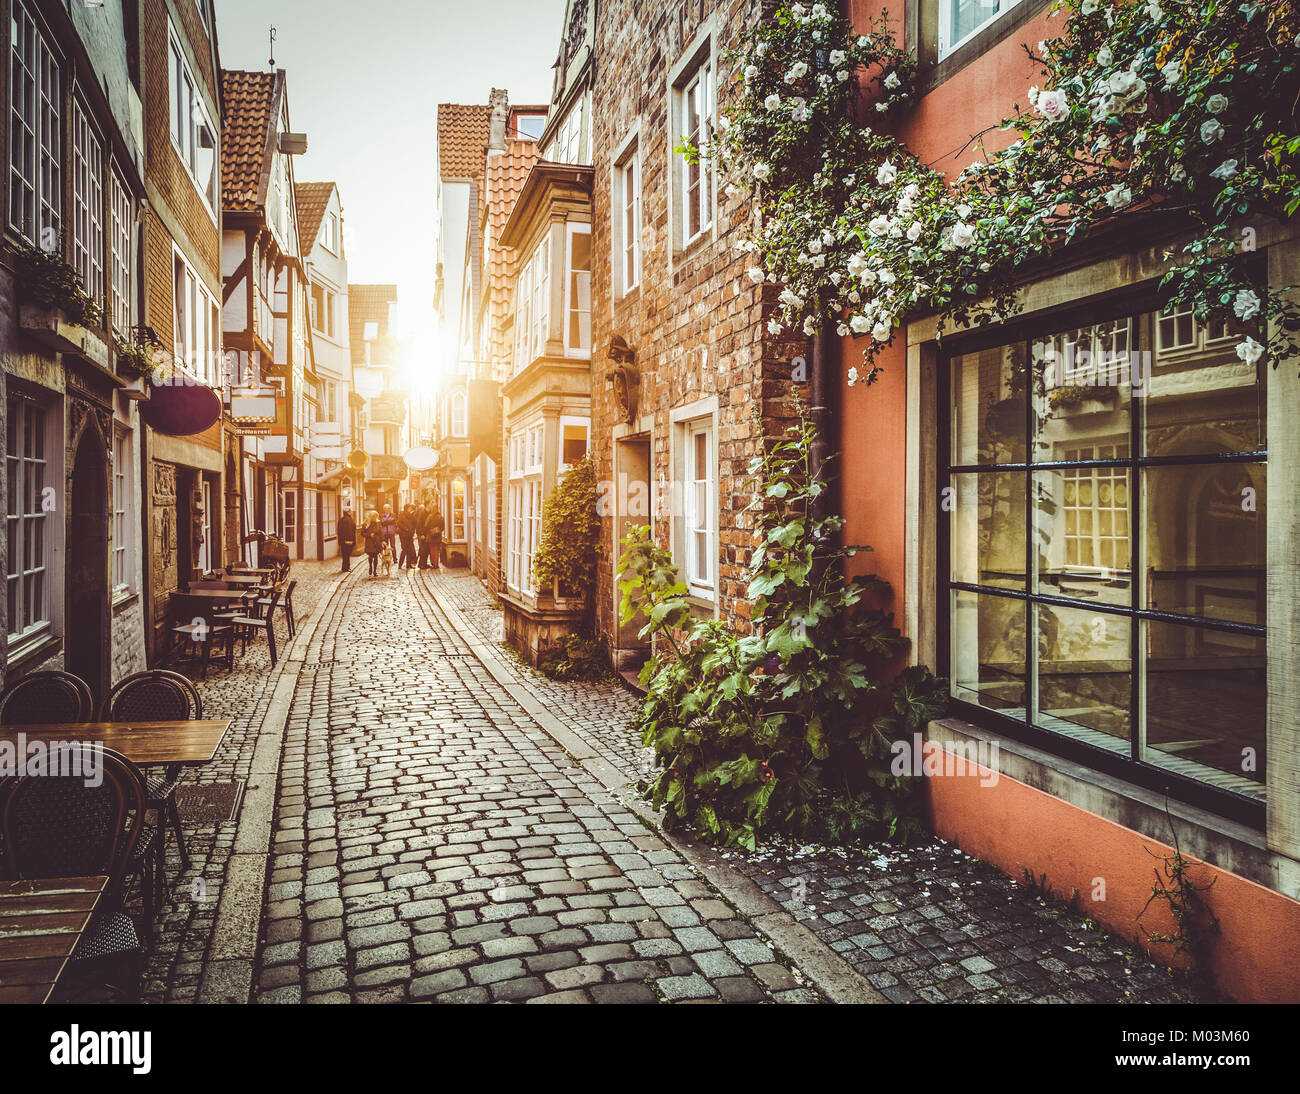 Old town in Europe at sunset with retro vintage Instagram style filter and lens flare effect - Stock Image